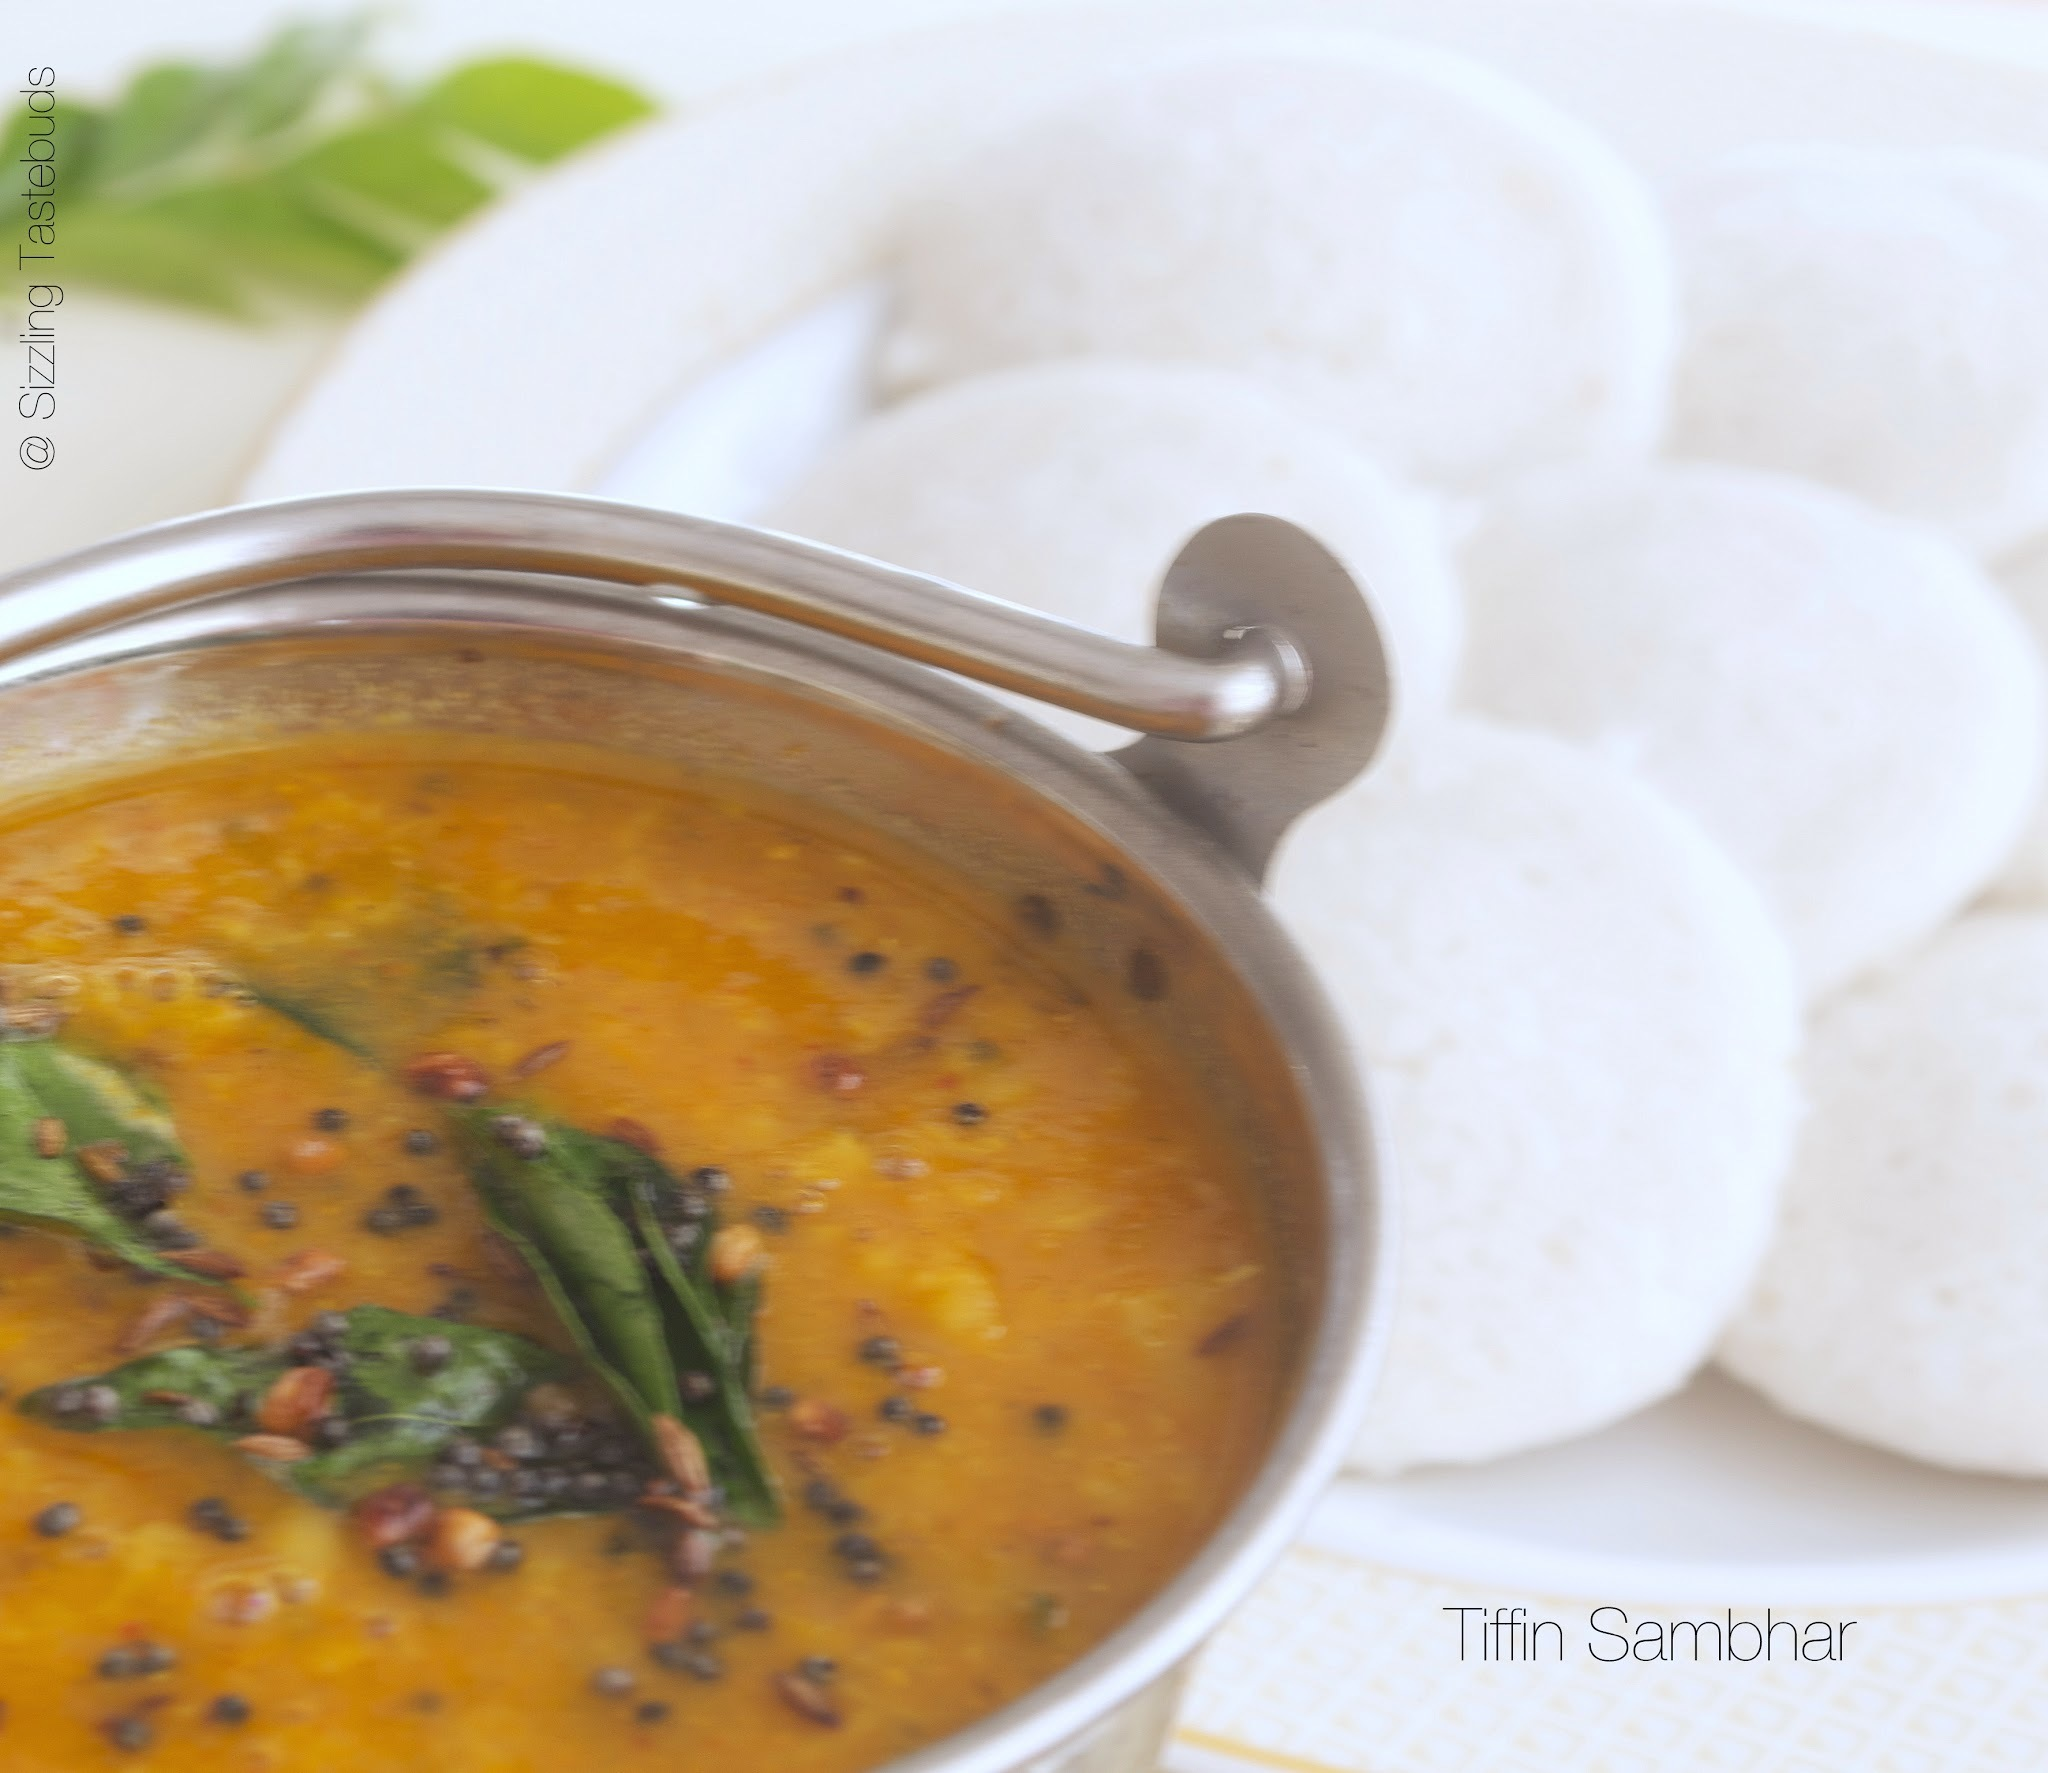 Hotel style Tiffin Sambhar | How to make Tiffin Sambhar